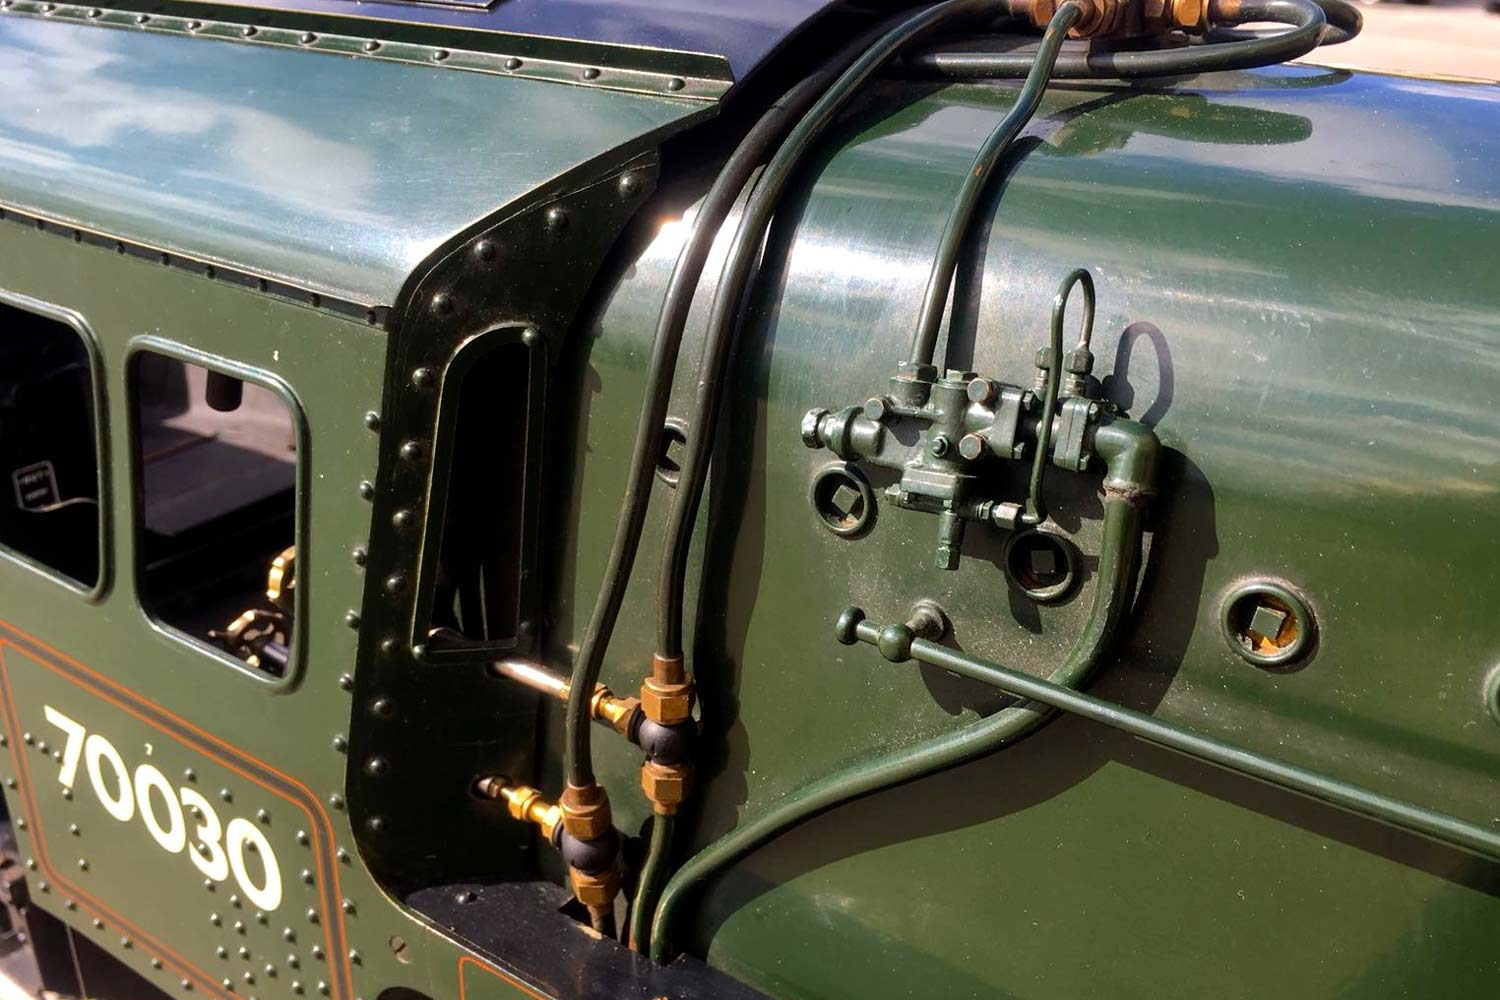 test 3-and-a-half-inch-BR-9F-OS-live-steam-locomotive-for-sale-34